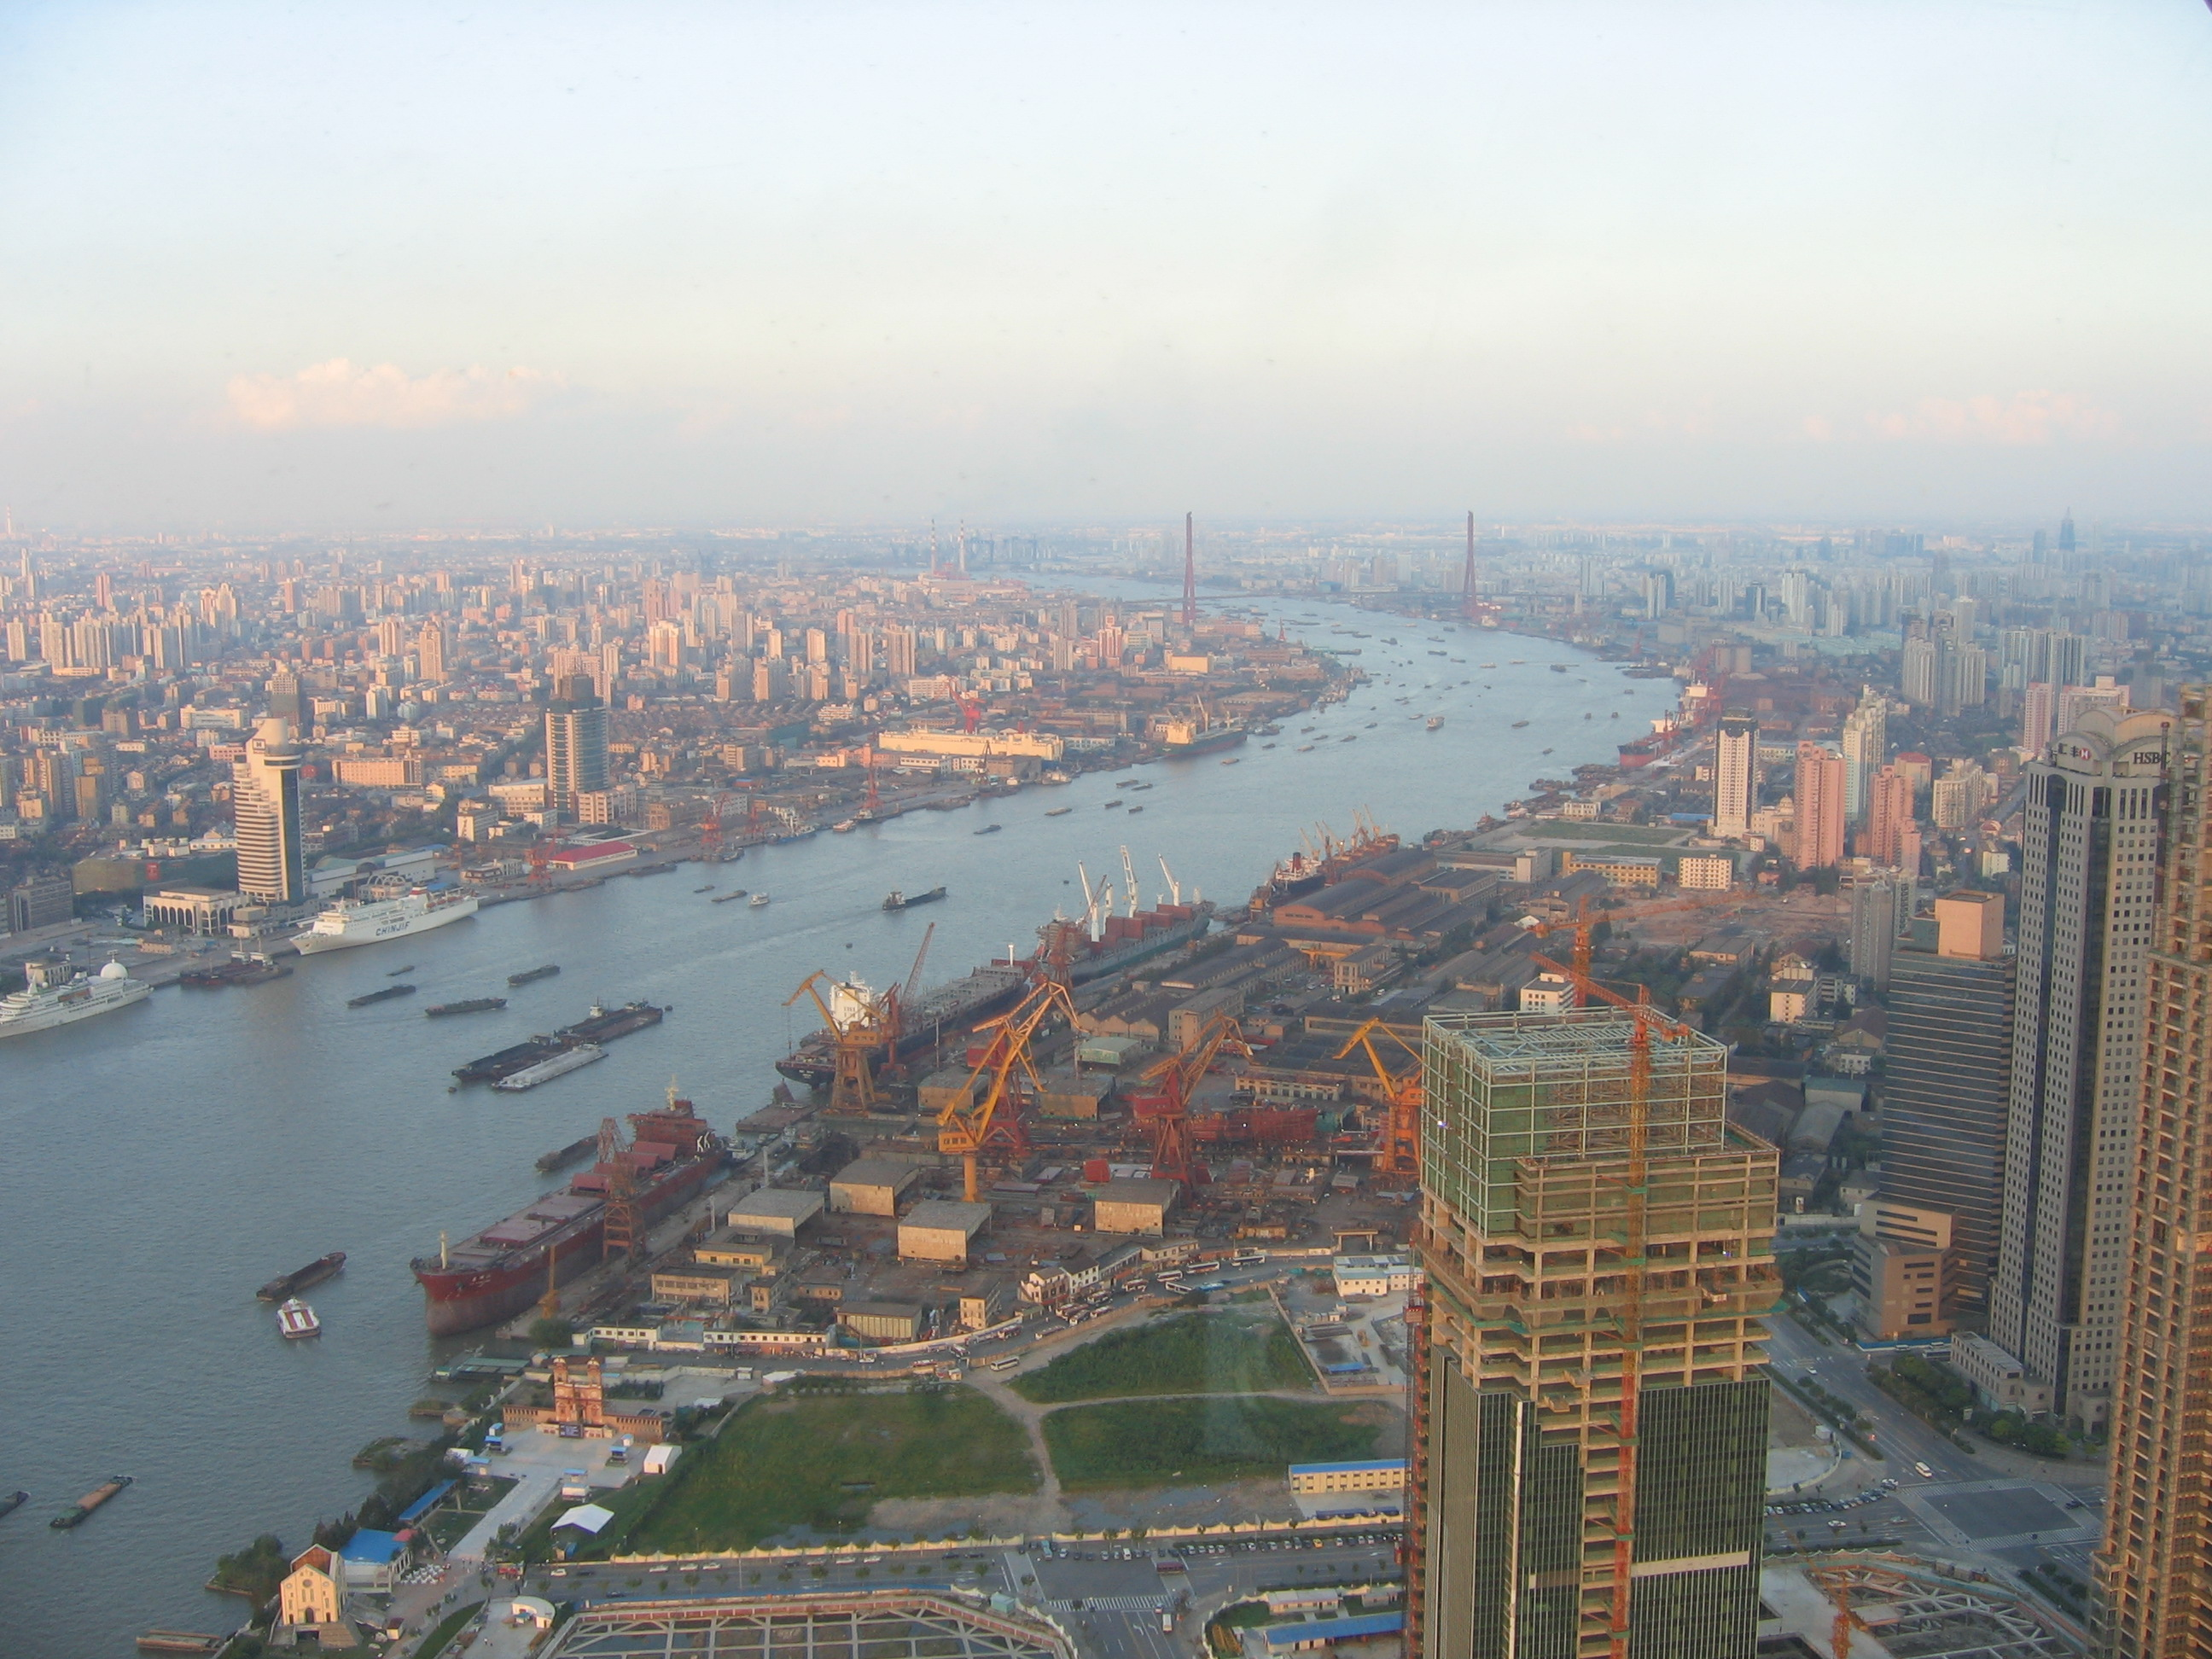 Things to do in Shanghai - The view from the Pearl Tower